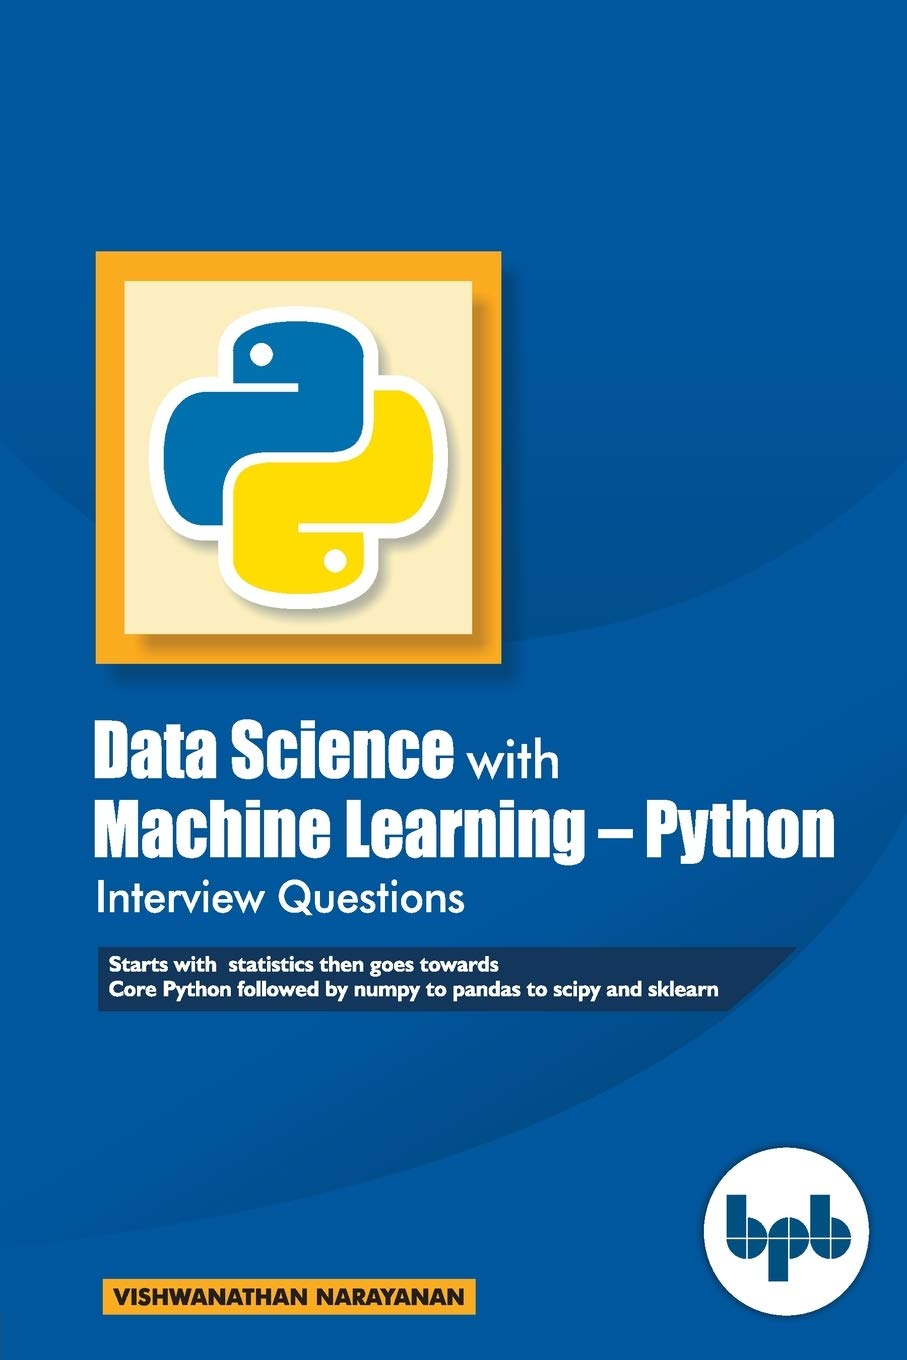 Data Science with Machine Learning – Python Interview Questions